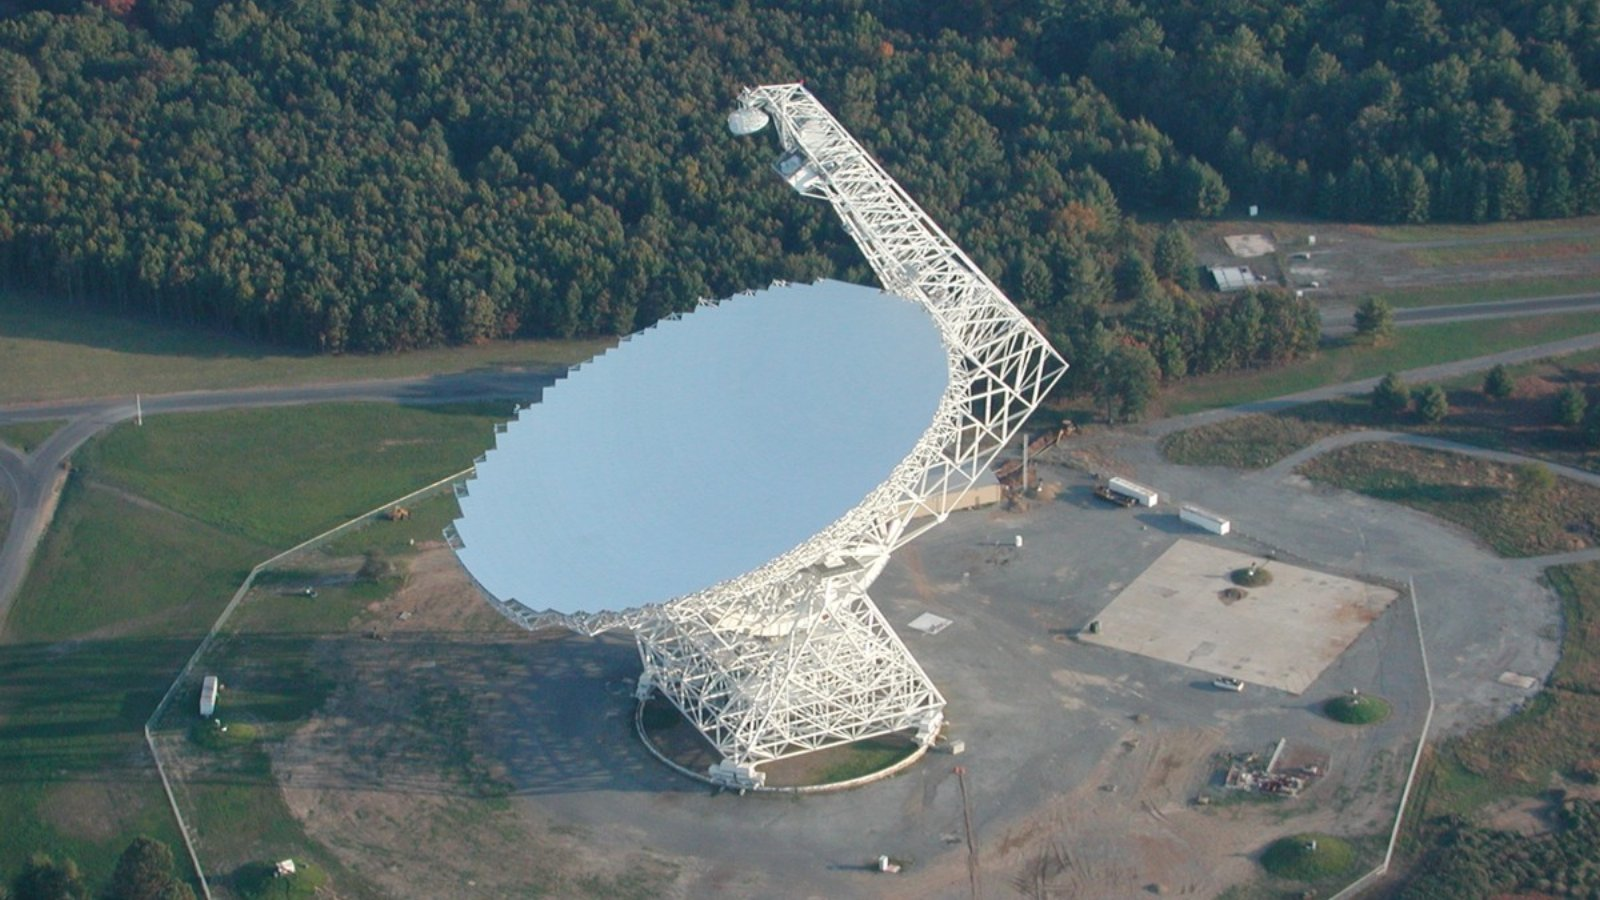 Click here to read This Two-Acre Telescope Powers Science's Search for Dark Energy